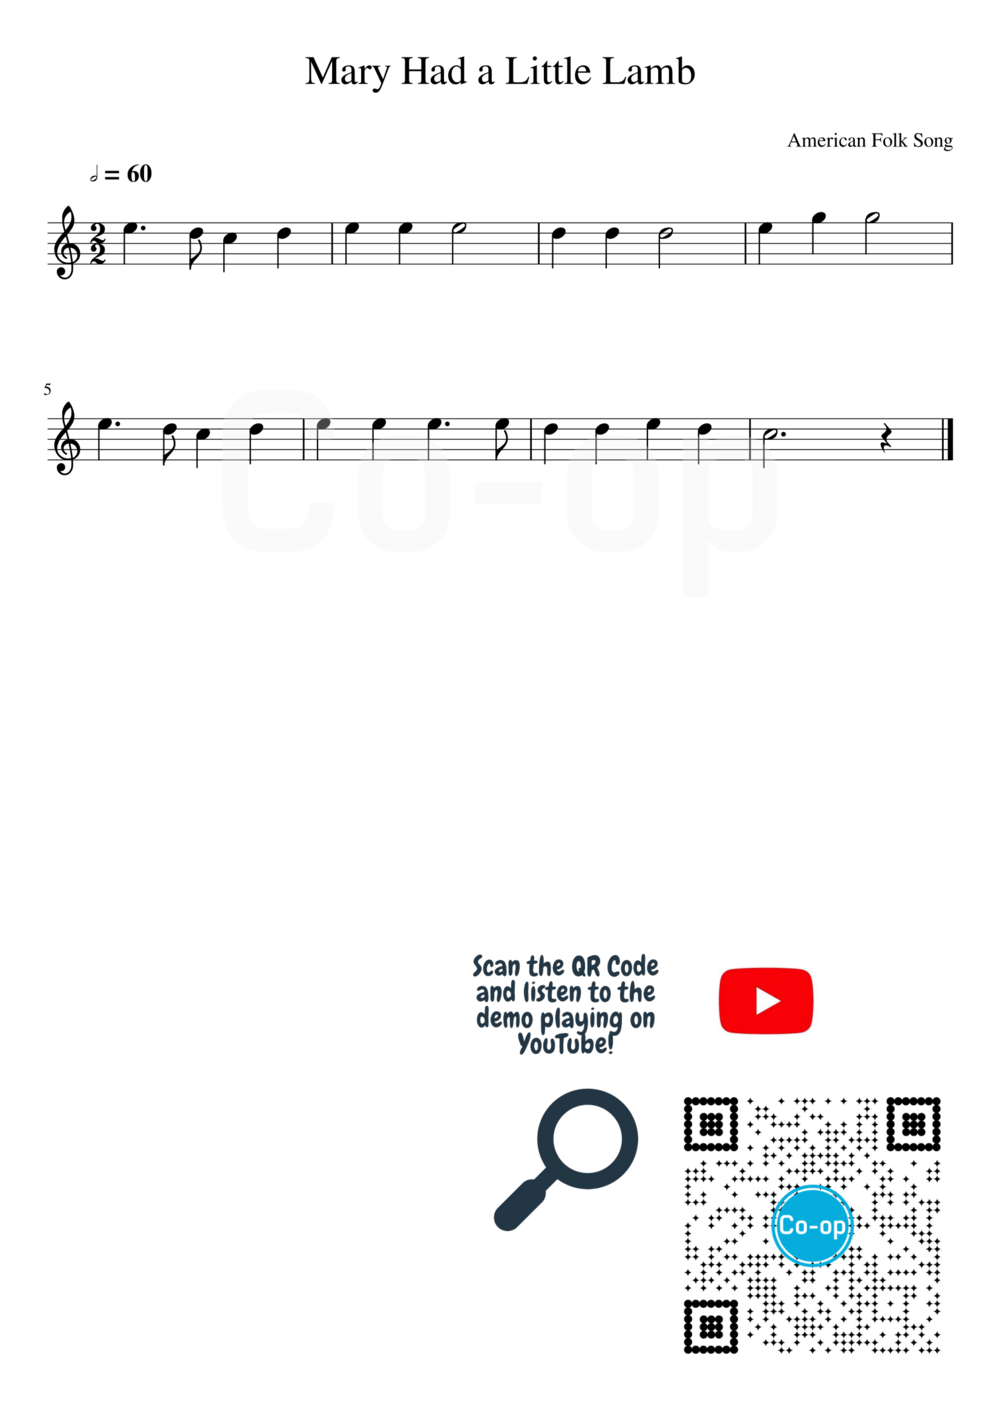 Mary Had a Little Lamb | Staff Notation | Free Sheet Music